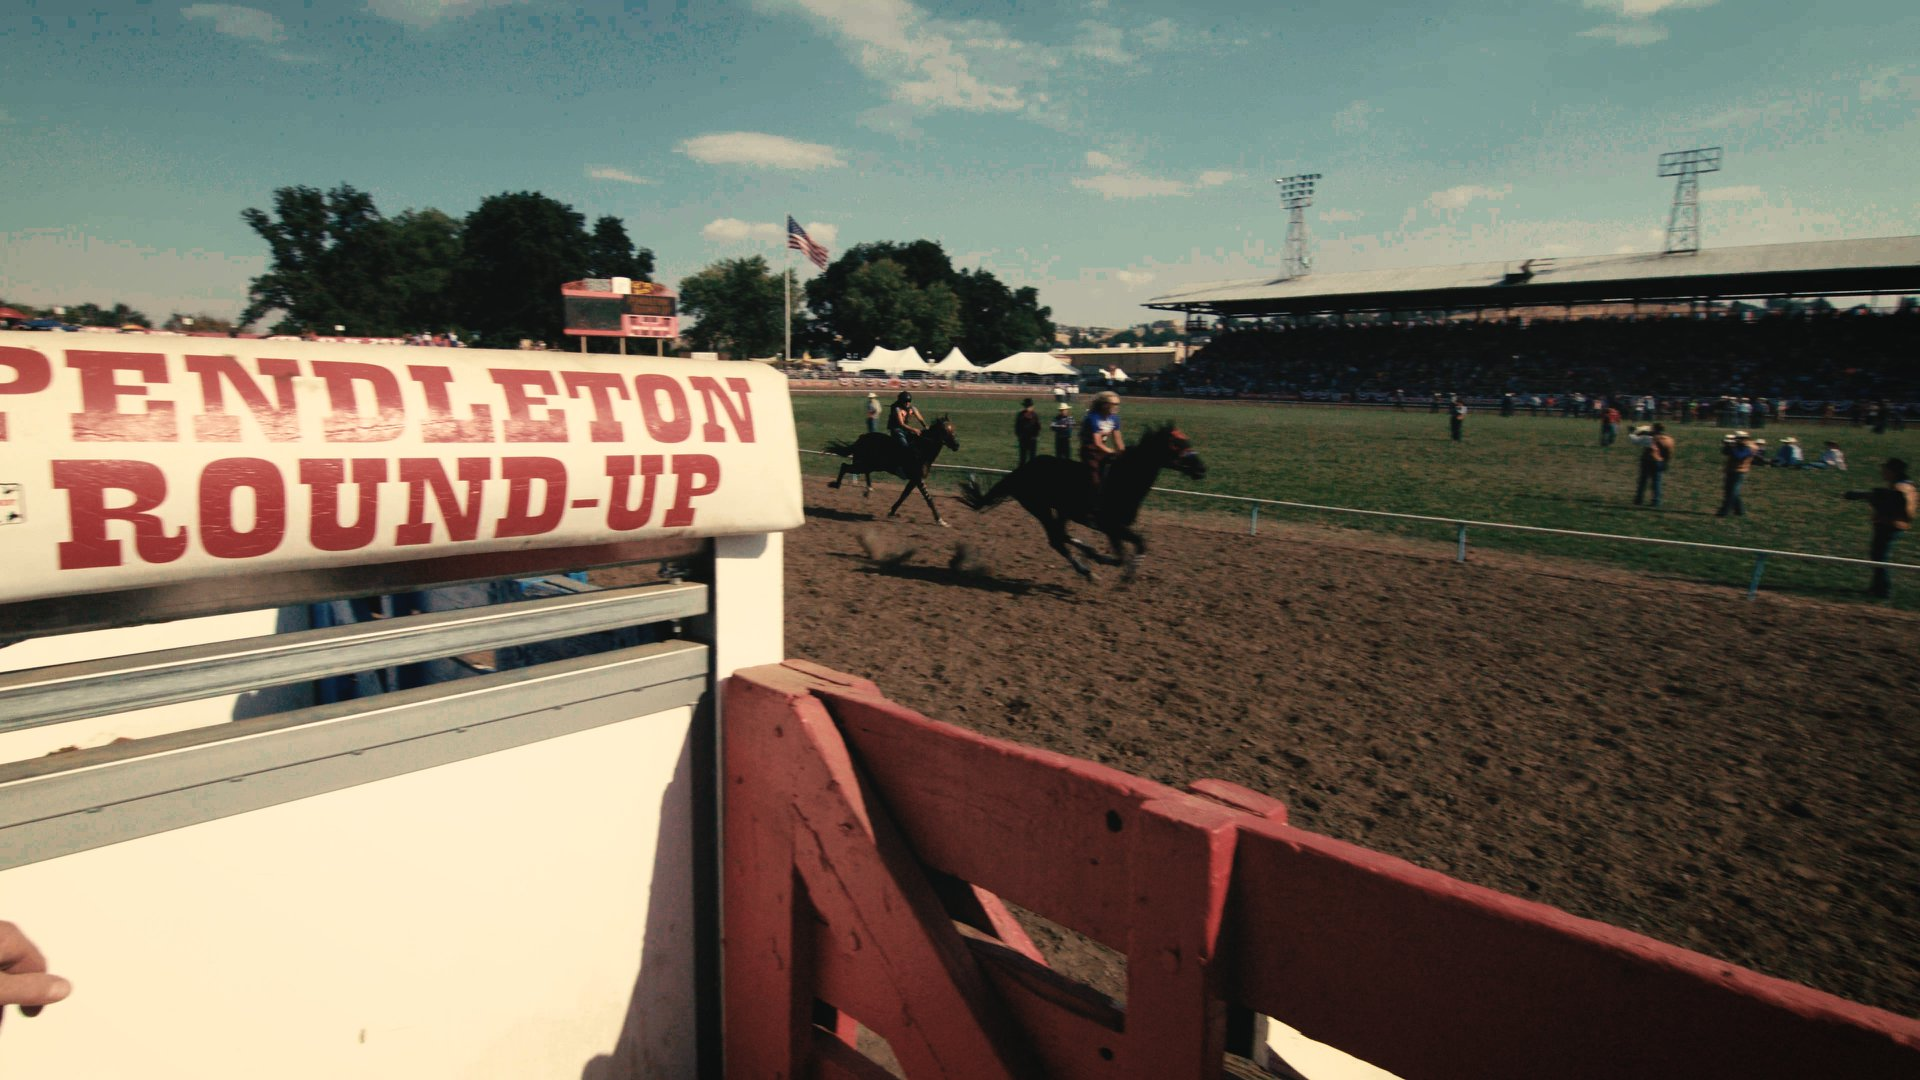 - Let'er Buck tells the astonishing history and inspiring stories of cowboys and Indians, trials and triumph as a little Oregon town comes together to put on an annual, century old, all-volunteer rodeo and Wild West pageant- The Pendleton Round-Up and Happy Canyon Night Show.Documentary